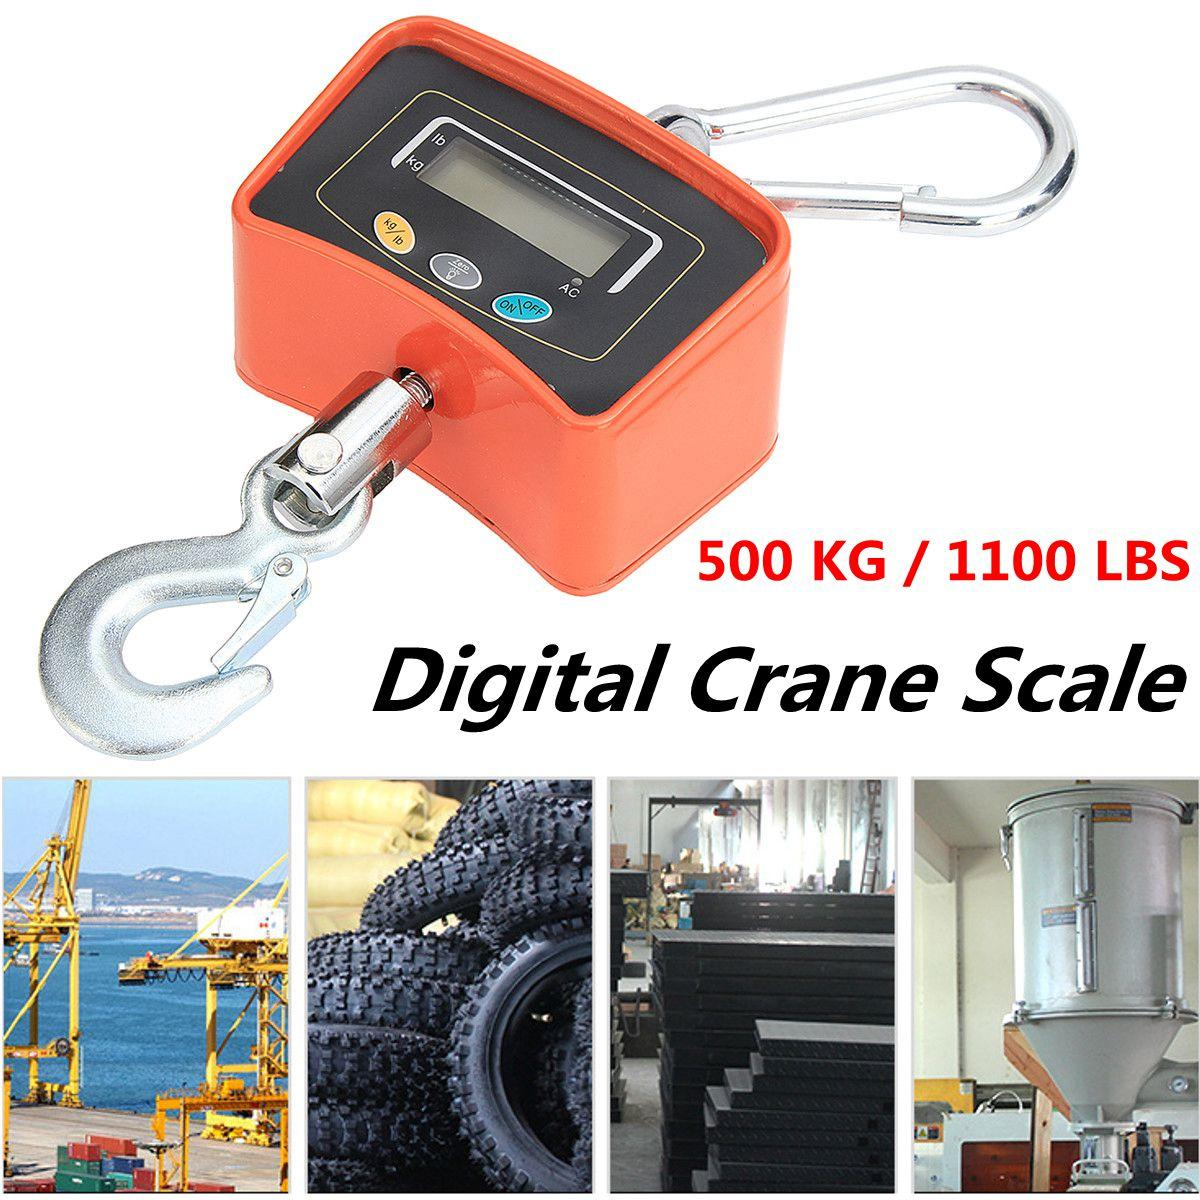 500KG/1100 LBS Digital Crane Scale 110V/220V Heavy Duty Industrial Hanging Scale Electronic Weighing Balance Tools 200000g electronic balance measuring scale large range balance counting and weight balance with 10g scale